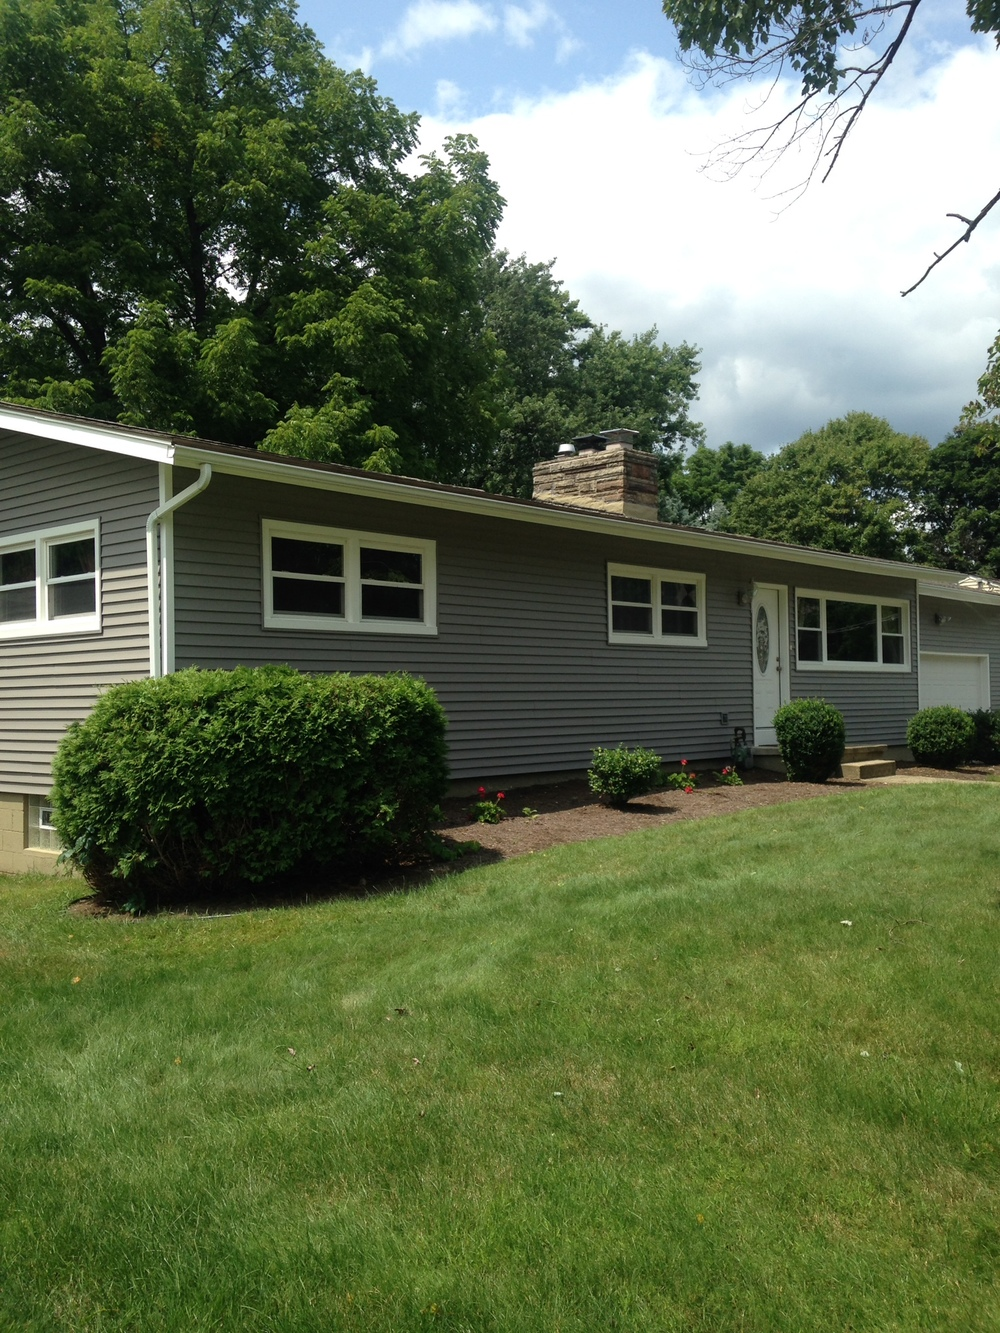 After - Royal Crest vinyl siding and replaced the window and built up the wall for a more traditional look.